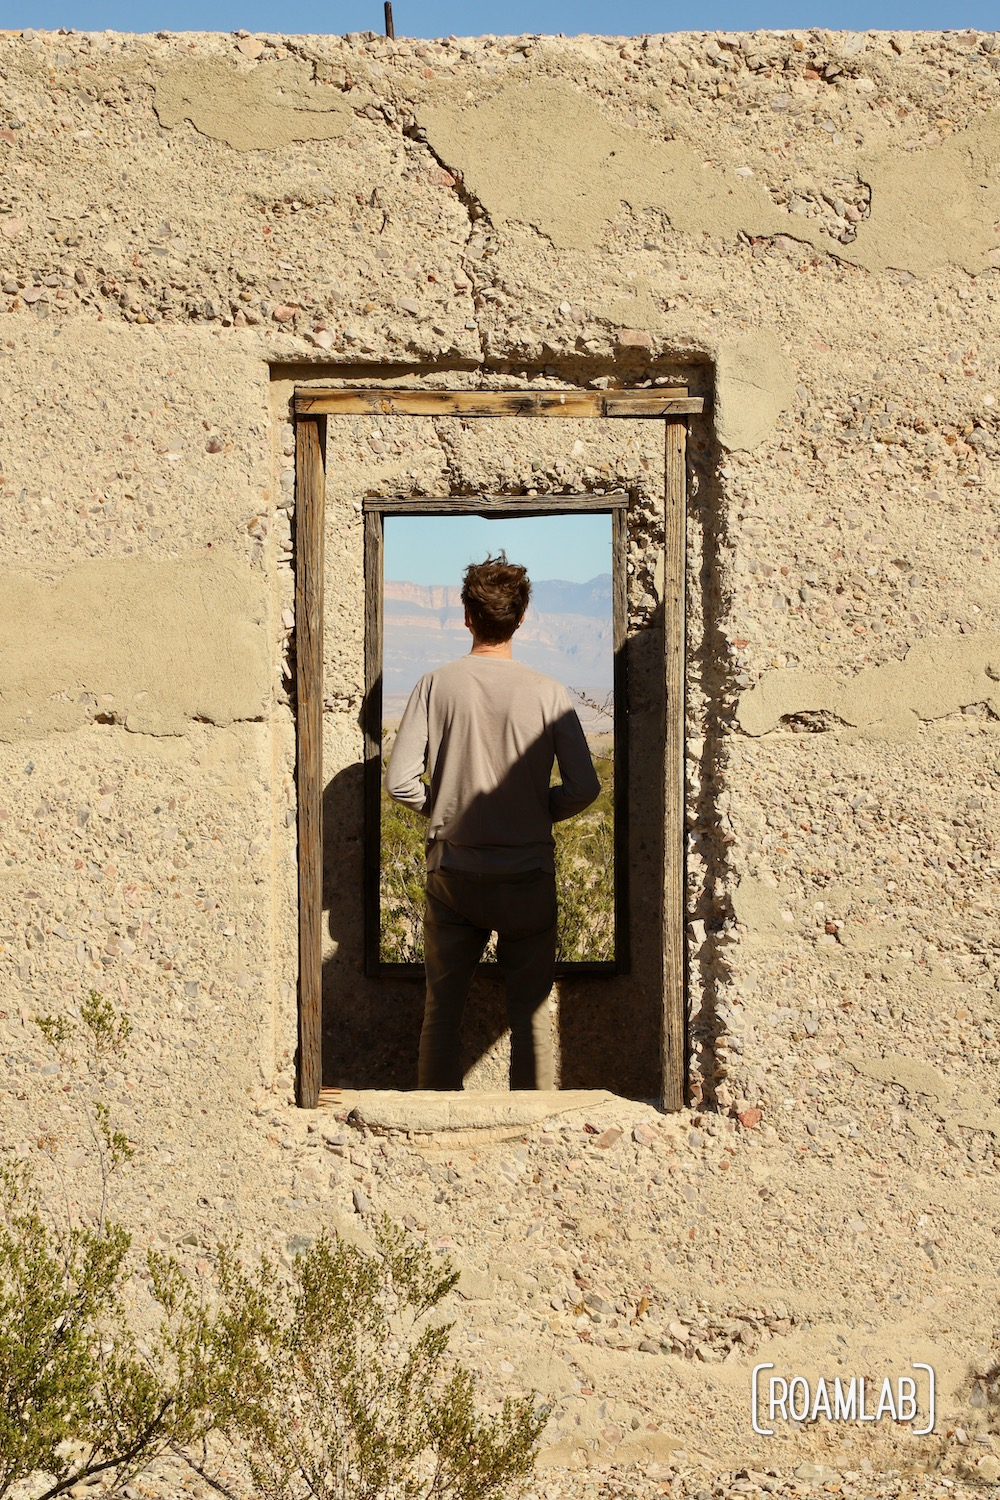 Man framed in the windows of an old stucco building.